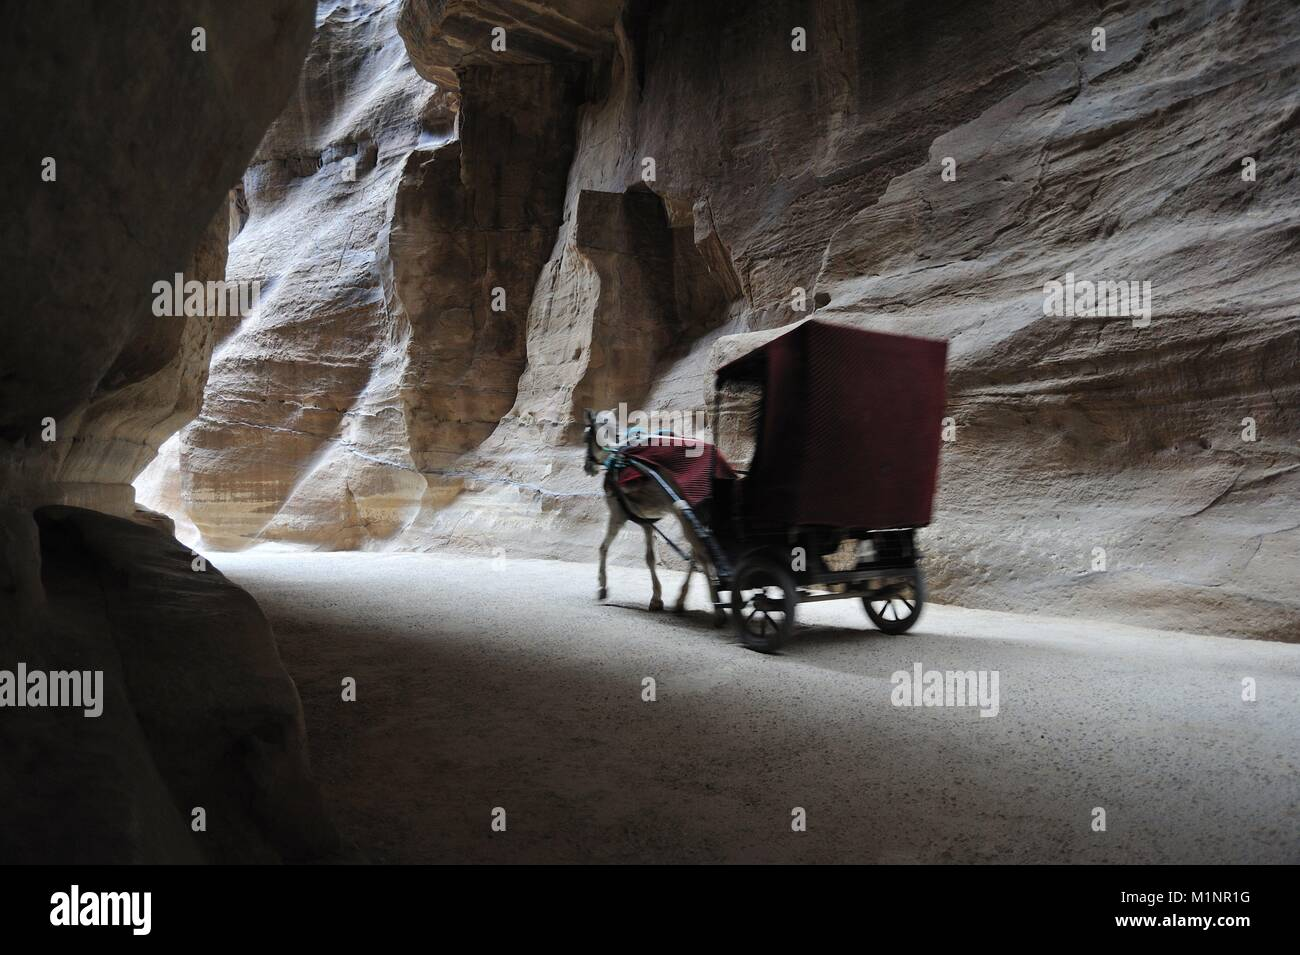 Jordan, Petra , horse carriage going through the Siq - February 2016 | usage worldwide - Stock Image